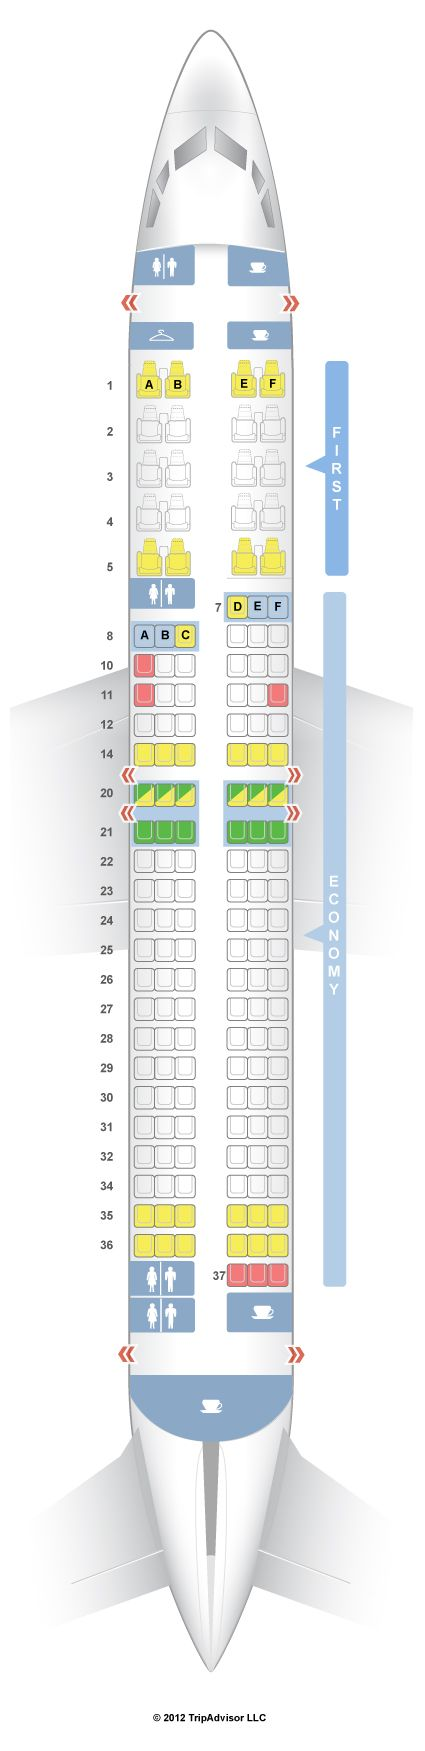 SeatGuru Seat Map United Boeing V Airports - Japan airlines seat map 773